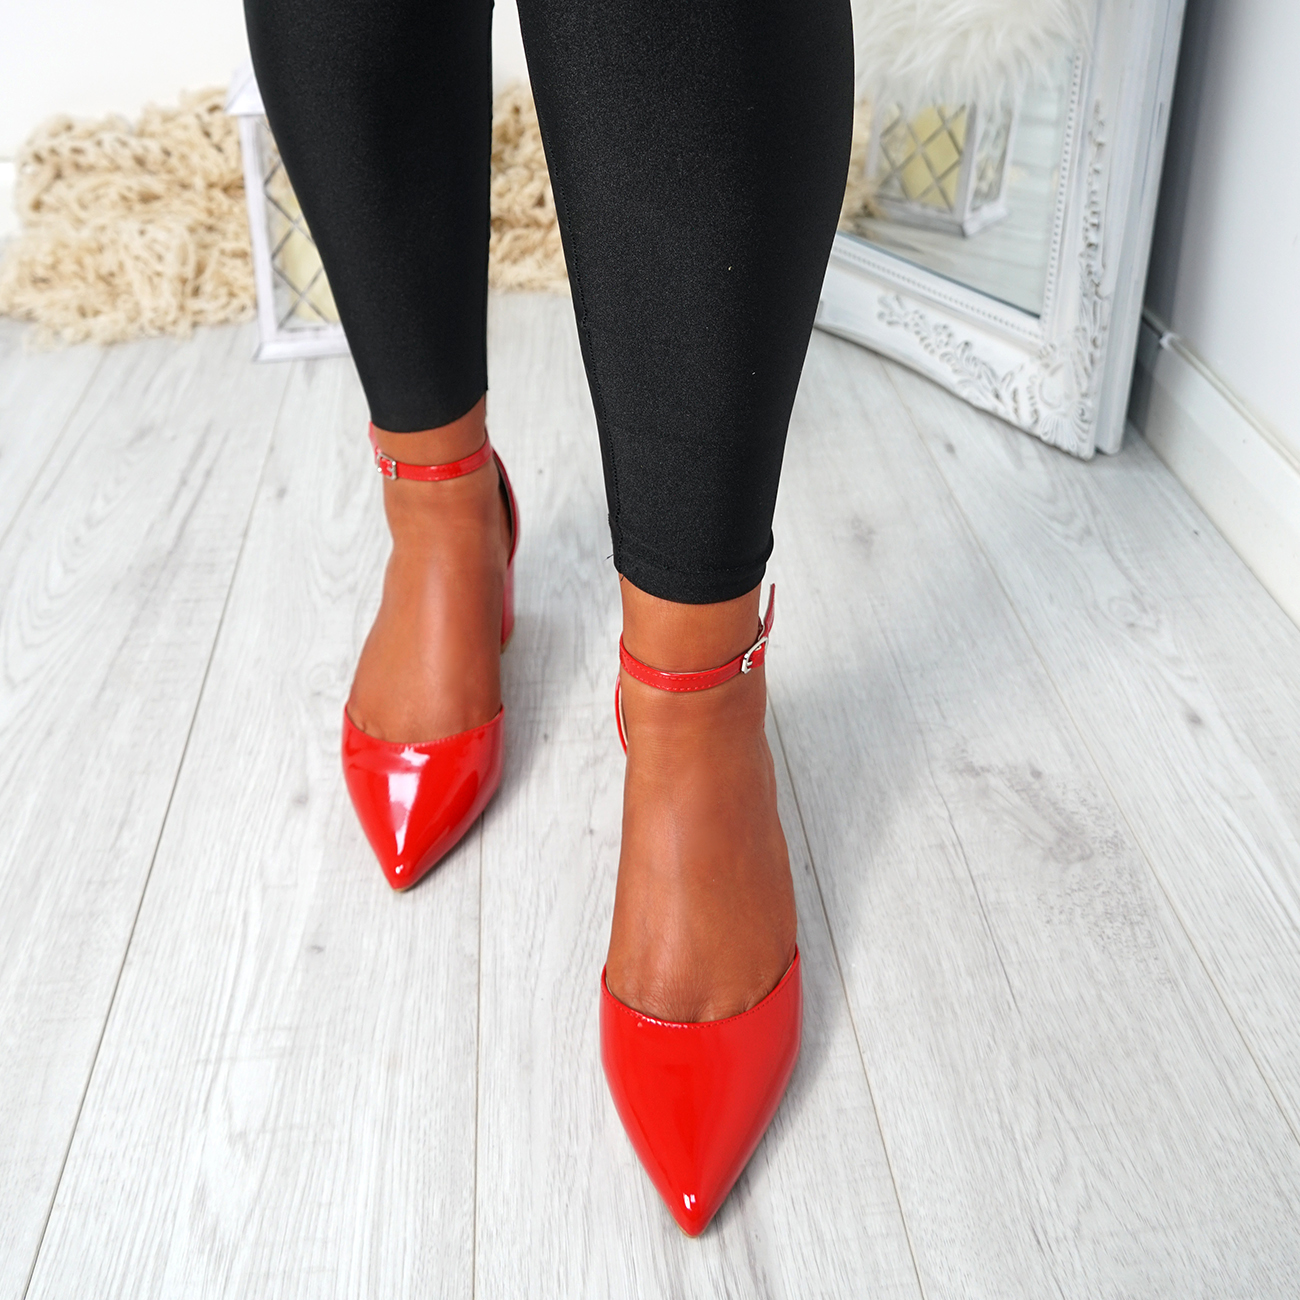 WOMENS-LADIES-ANKLE-STRAP-BLOCK-HEEL-PUMPS-POINTED-TOE-WORK-PARTY-SHOES-SIZE thumbnail 18